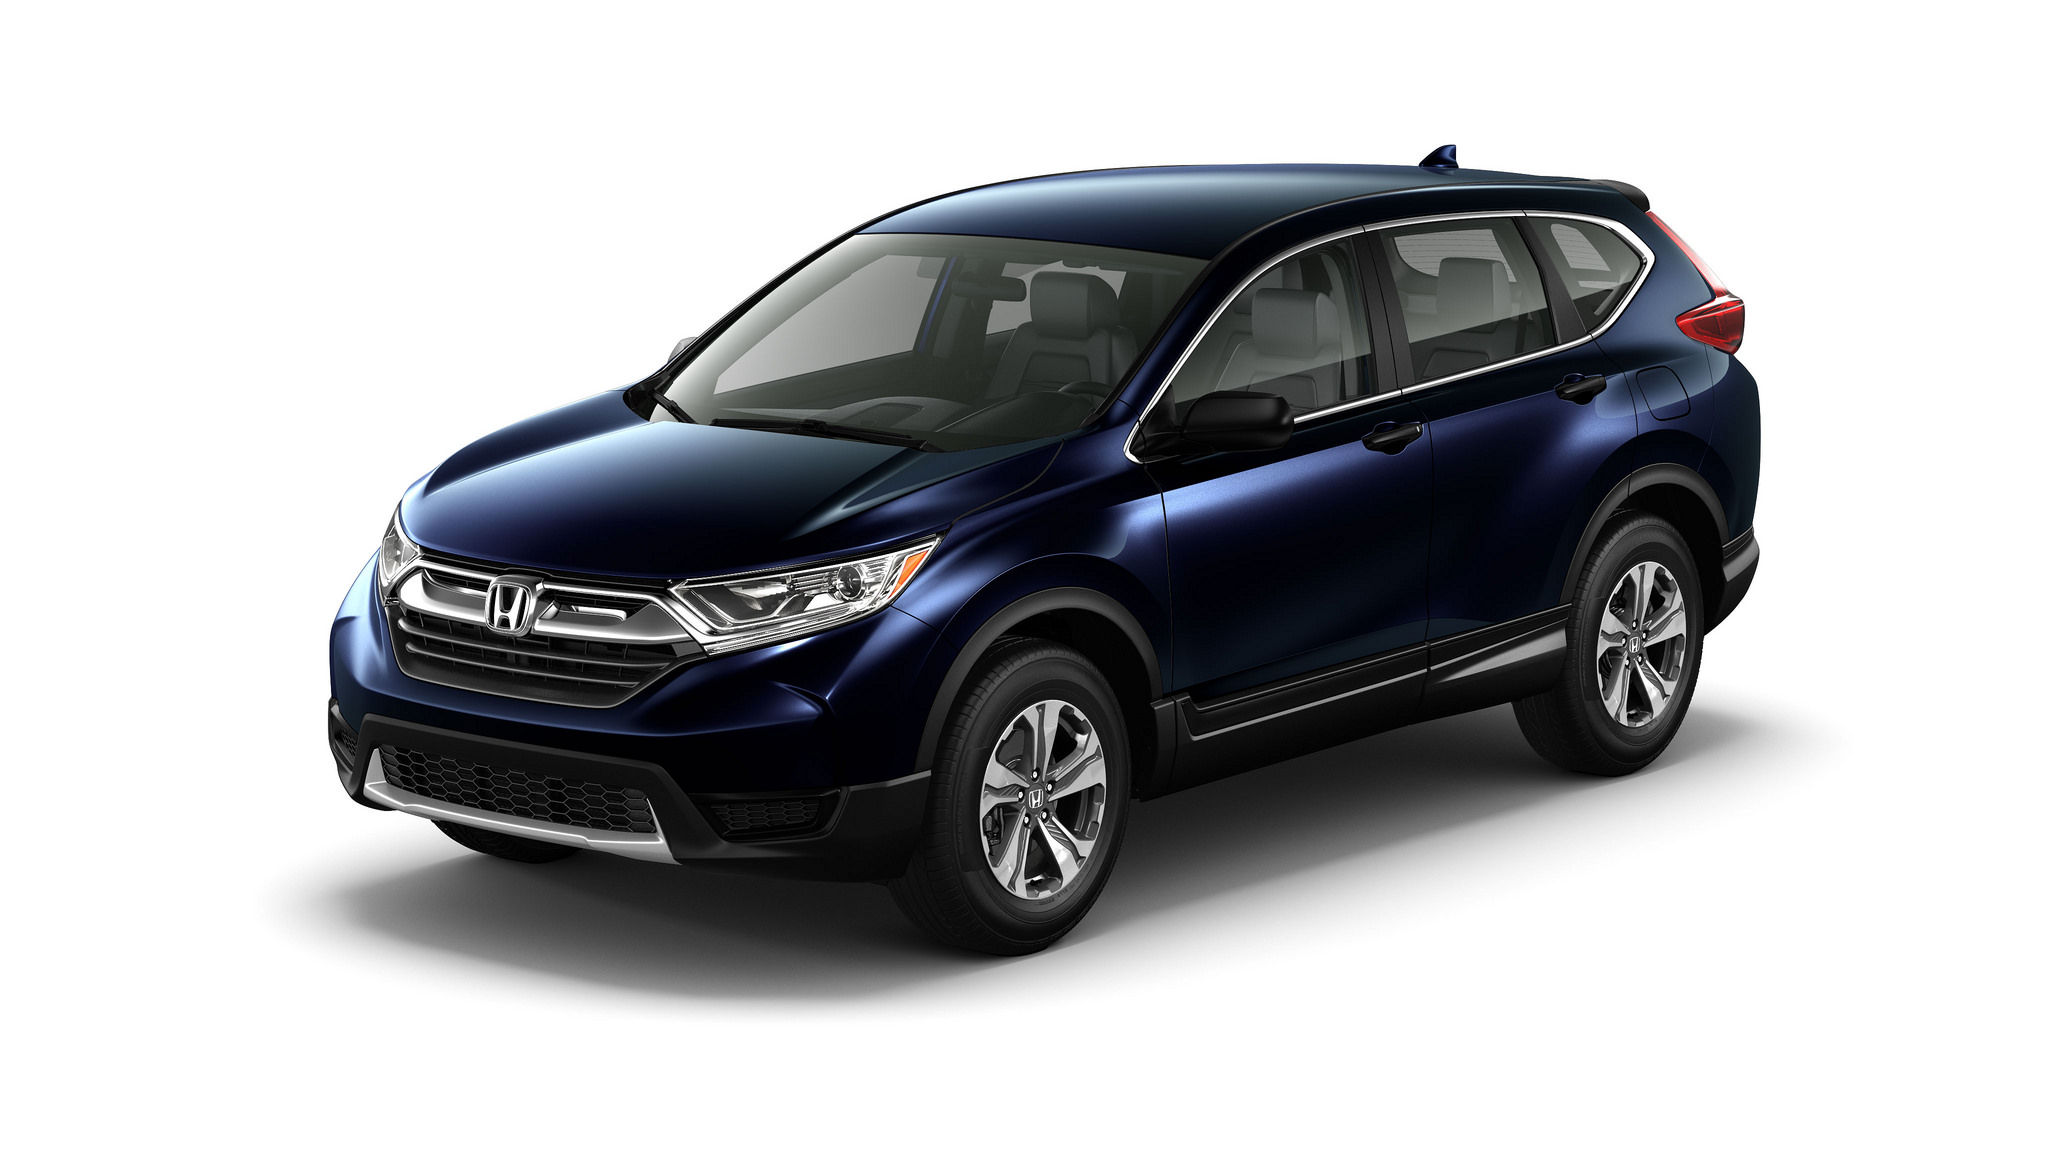 Blue Stock Image 2017 Honda CR-V